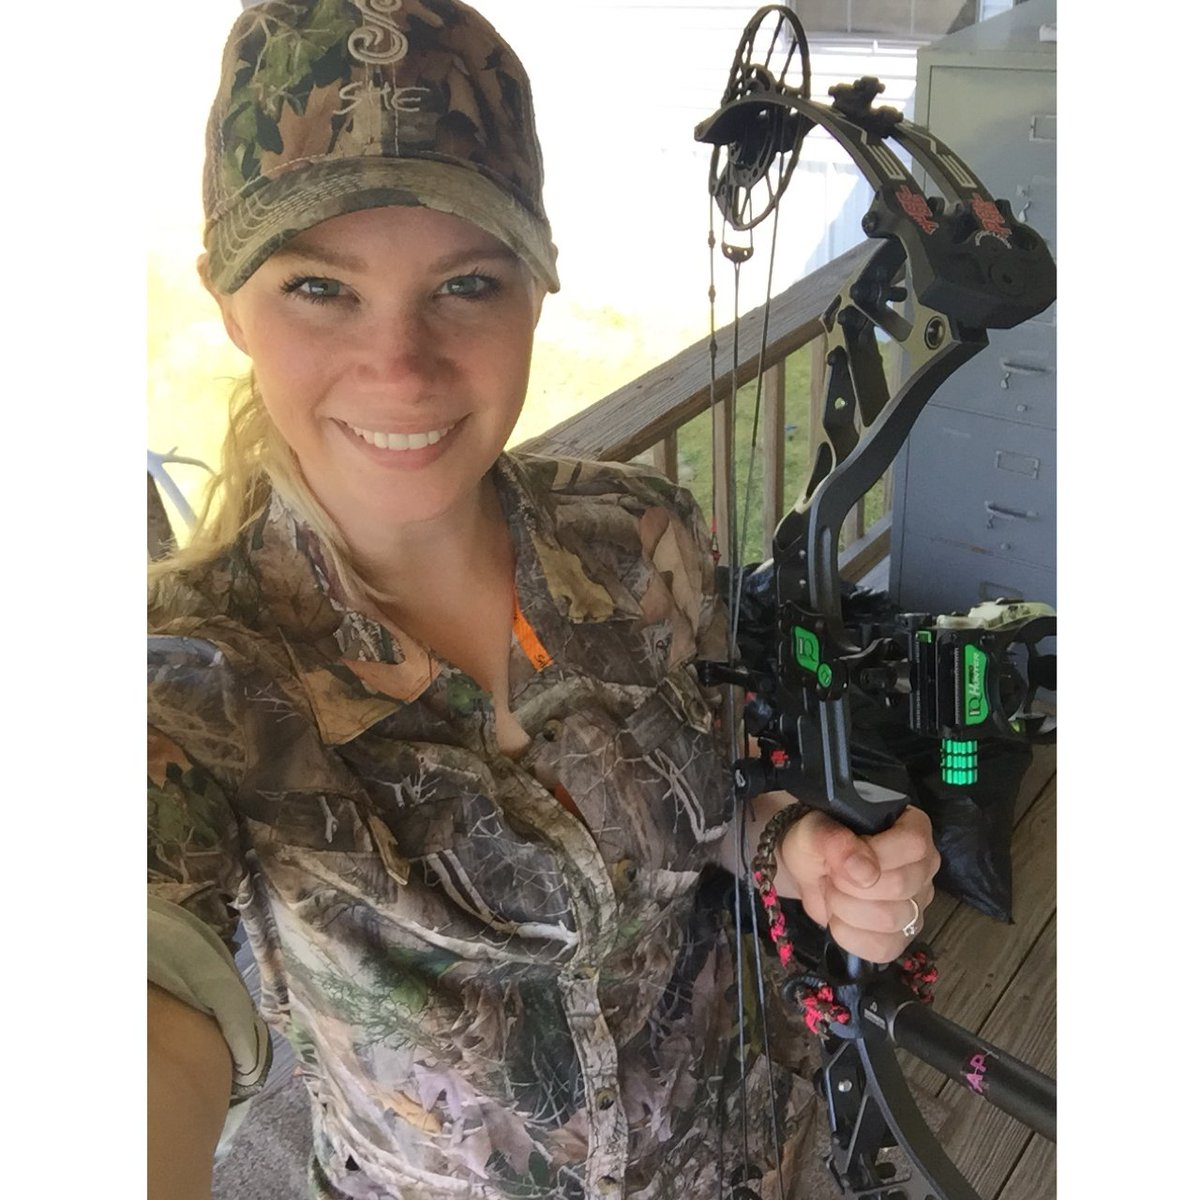 #TapTuesday have I mentioned how much I love my new setup?? #SheHunts #Archery #BowHunting